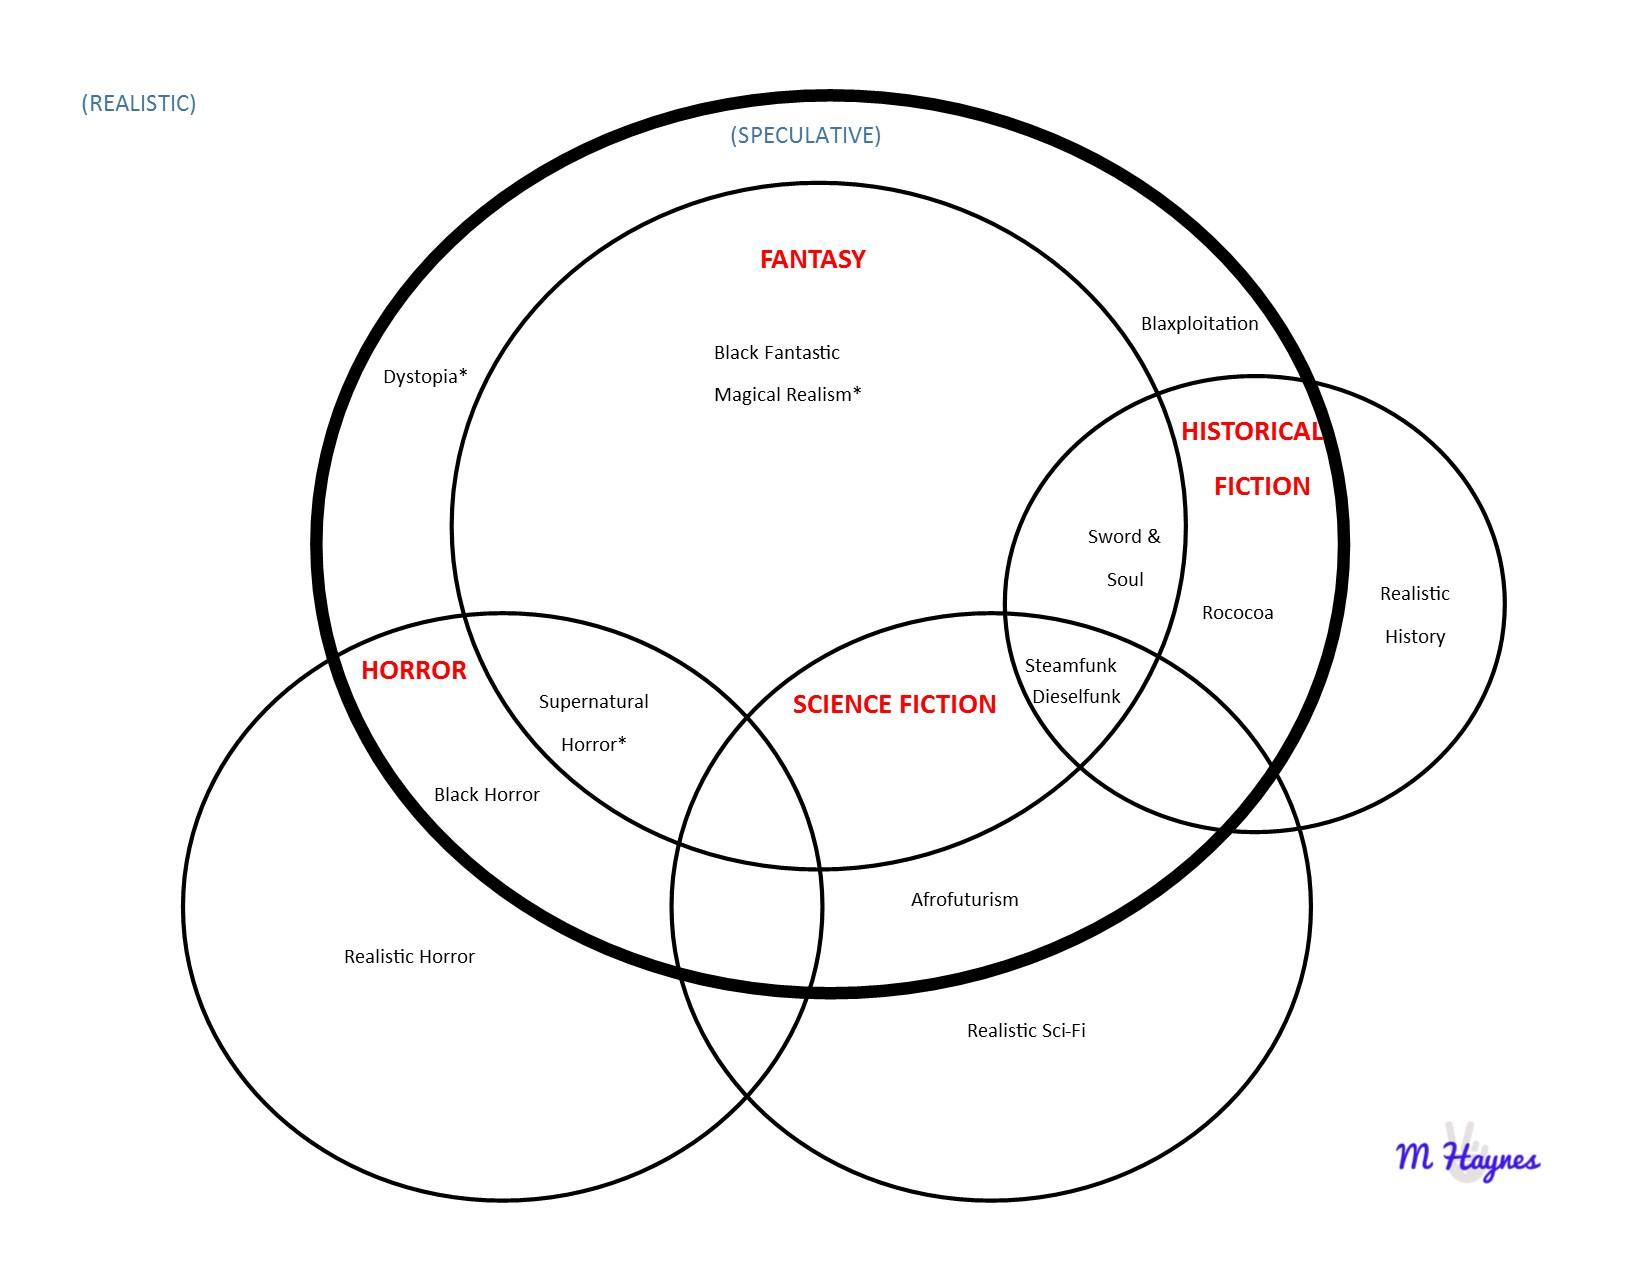 Everything in the bold circle is Speculative